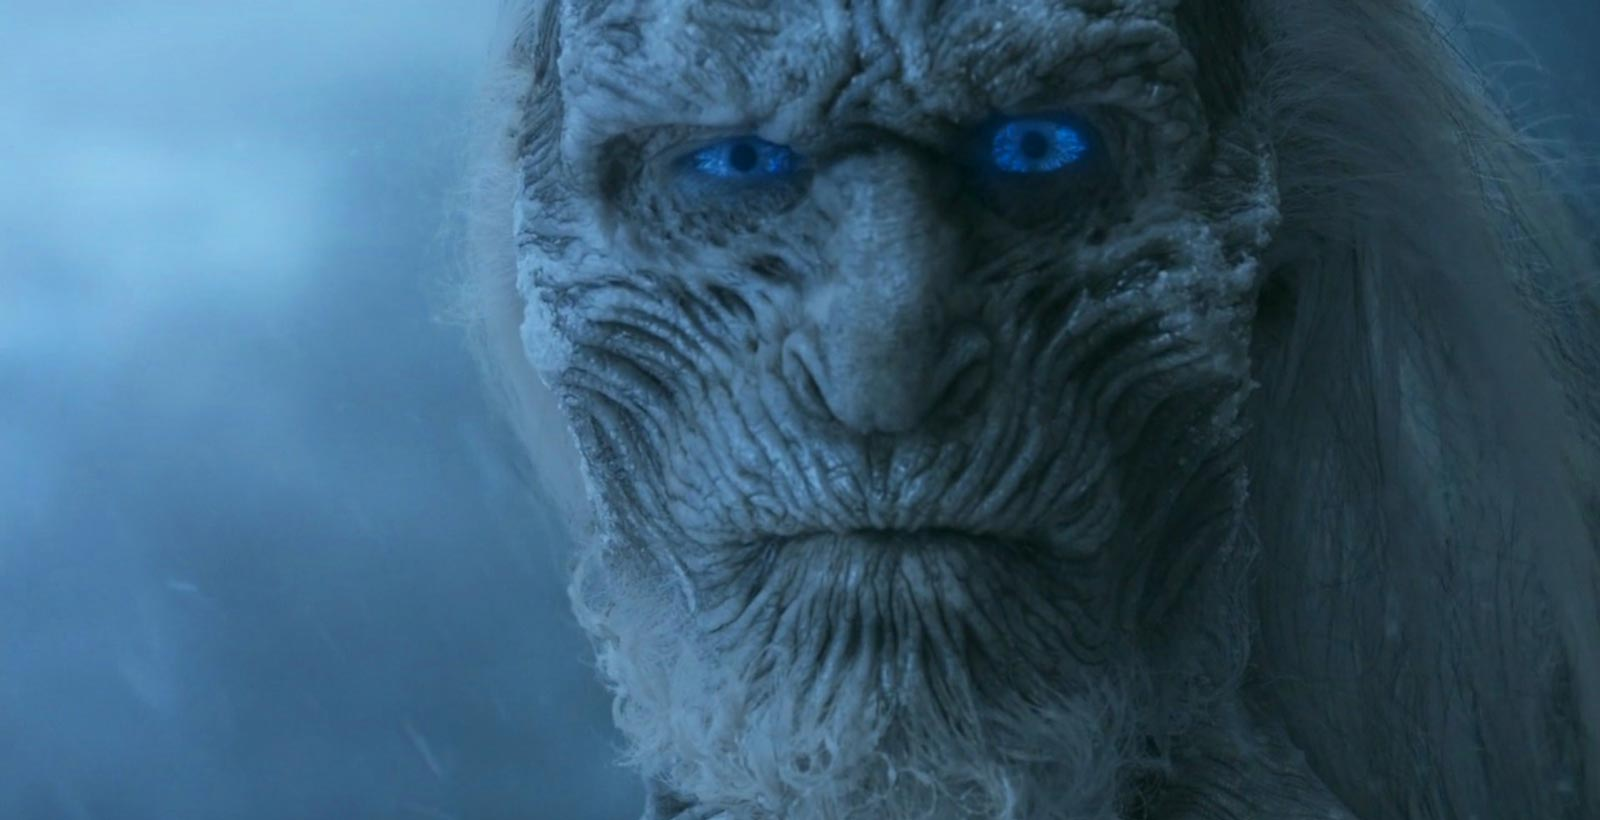 whitewalker_